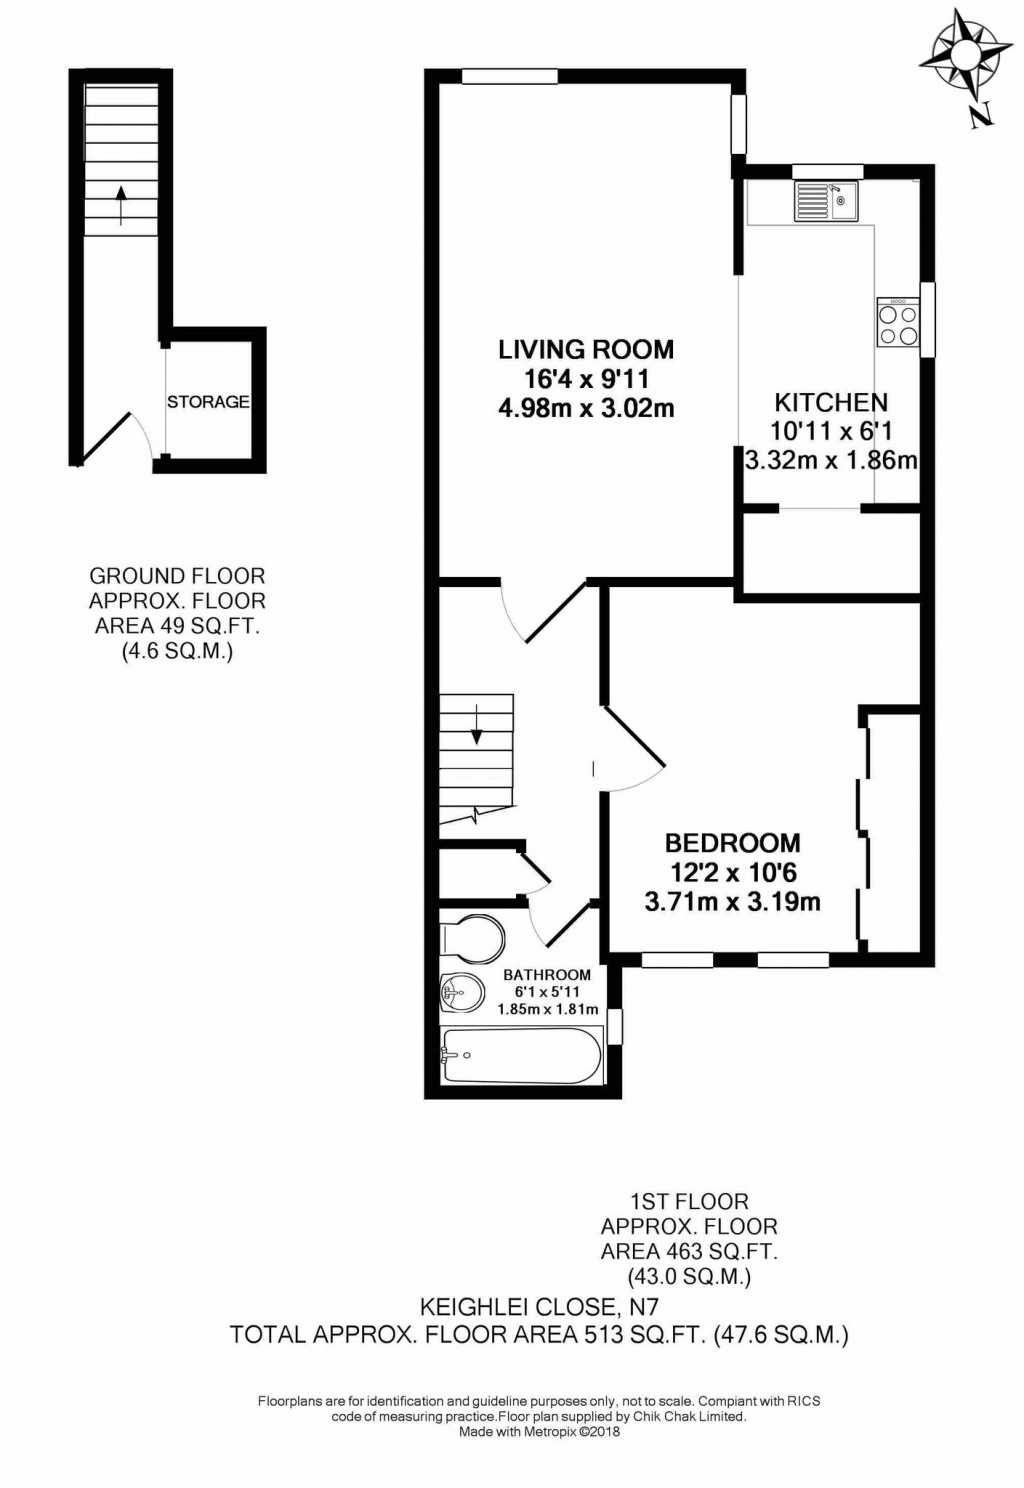 Floorplans For Keighley Close, London